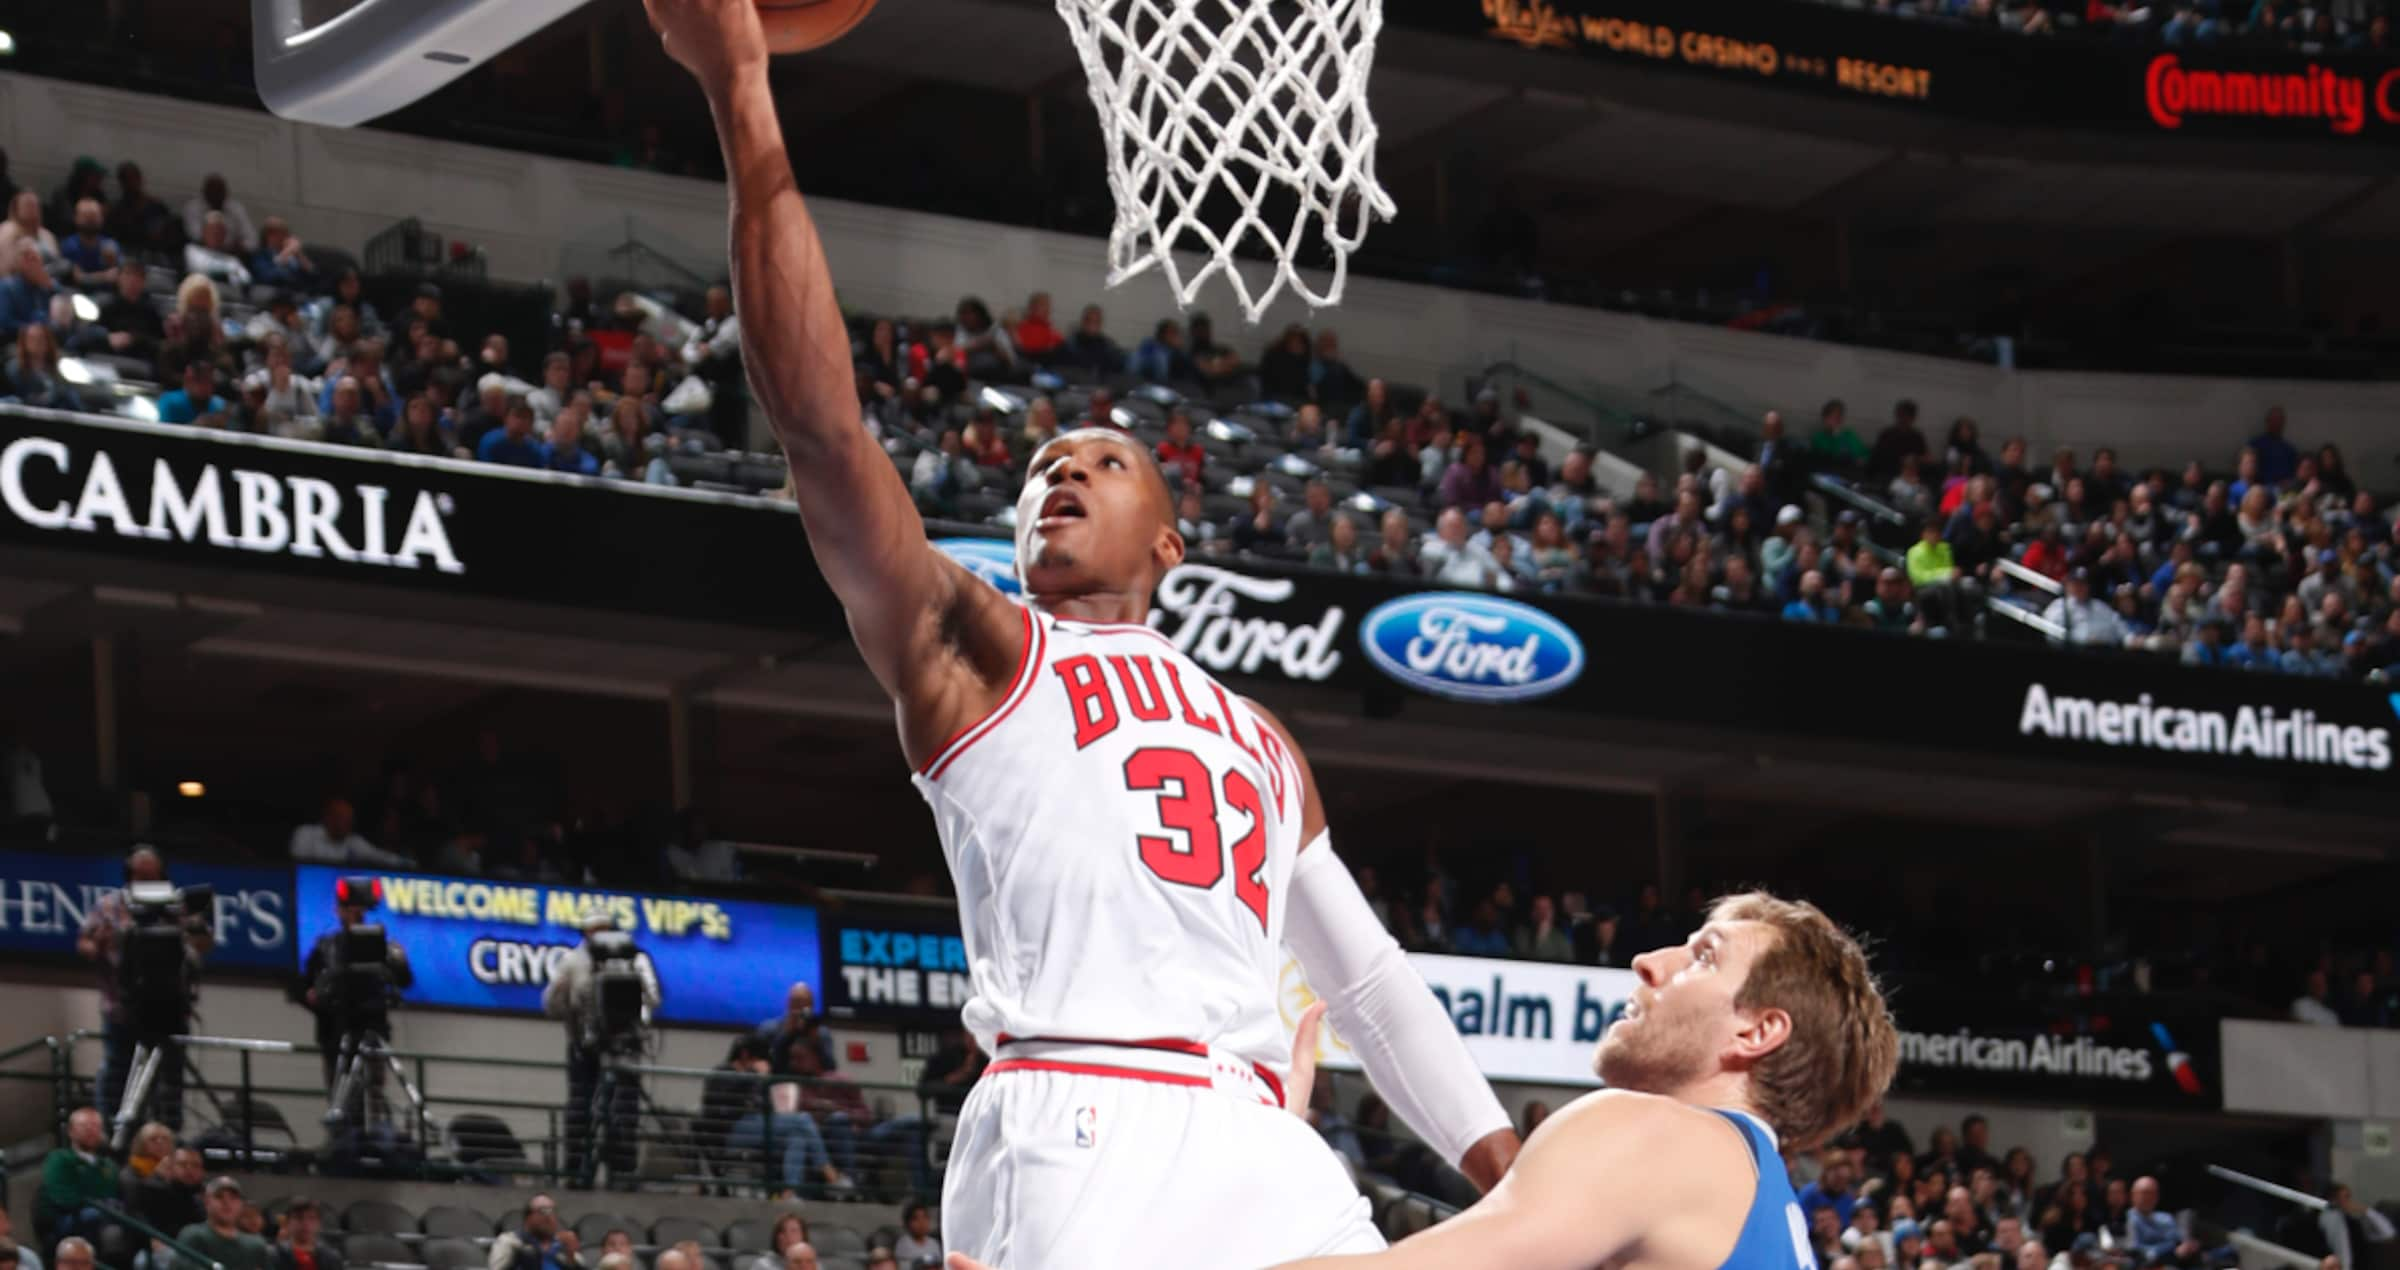 Kris Dunn scores career high 32 points against Dallas